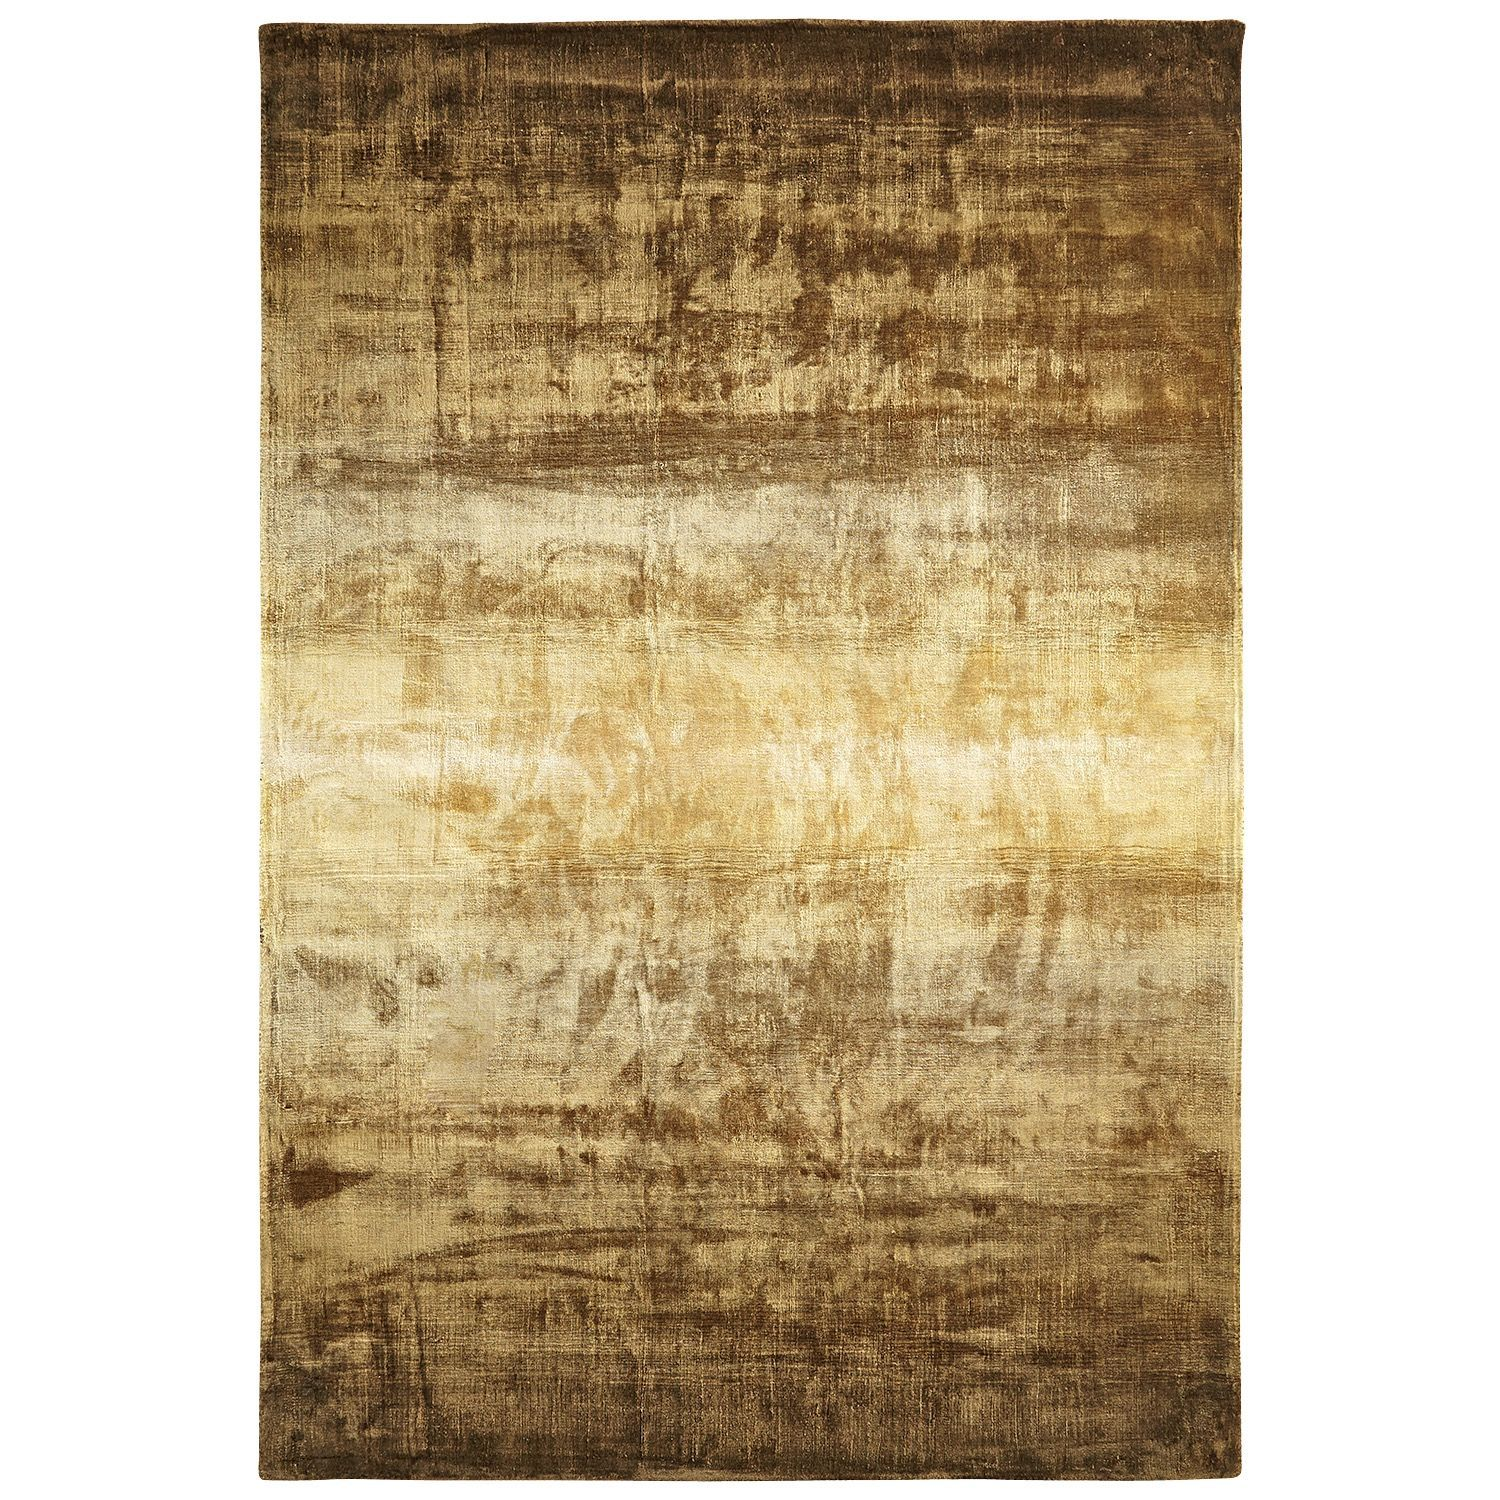 Luxe Ombre Bronze 6x9 Rug Rugs Rugs In Living Room Living Room